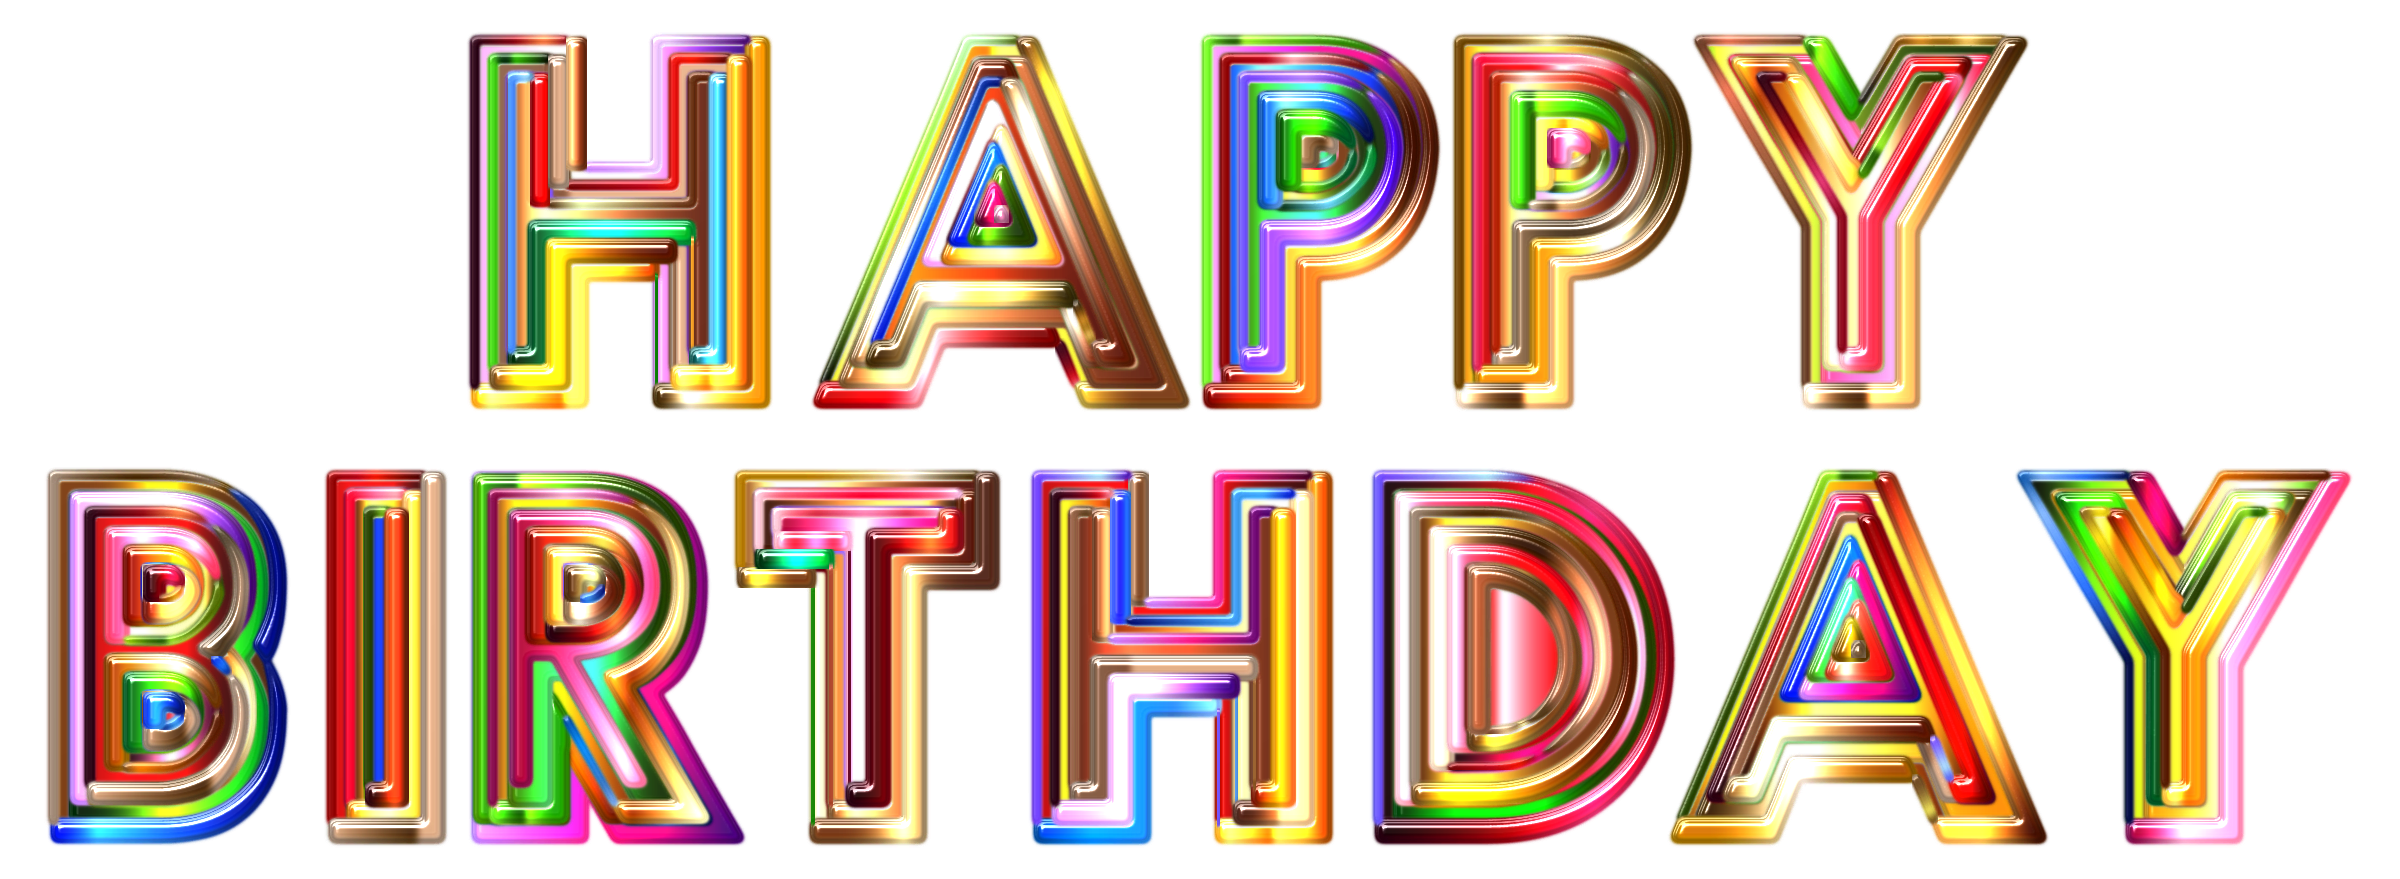 Happy birthday transparent png. Frozen clipart tulisan